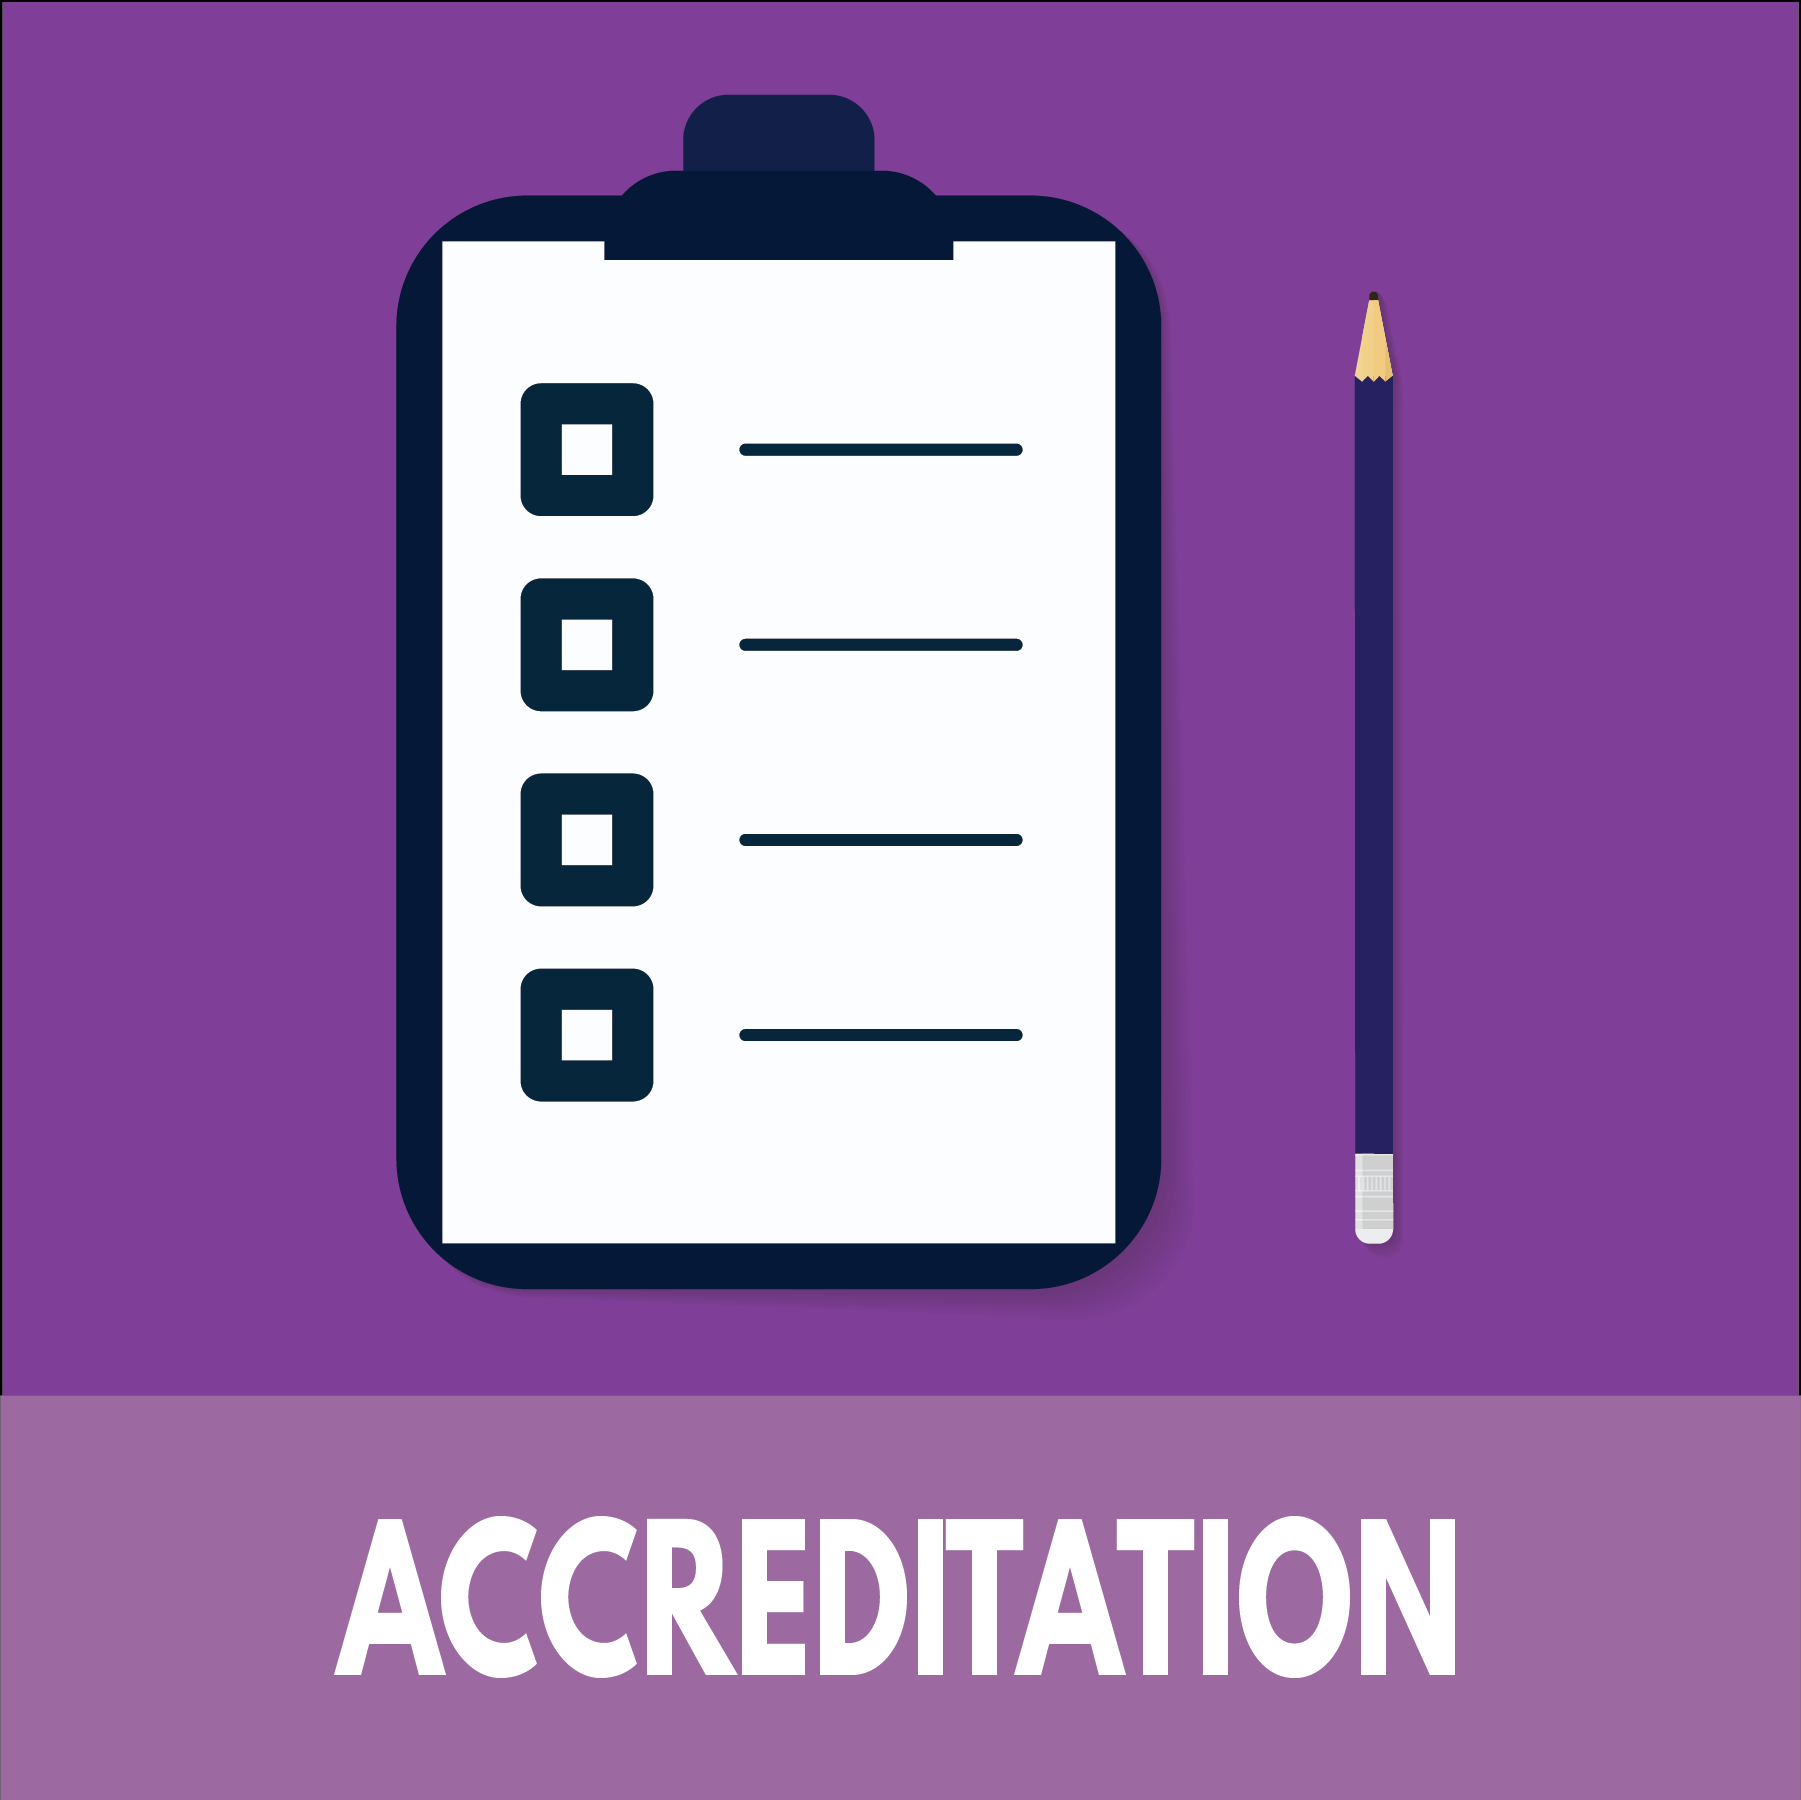 accreditation-01.png